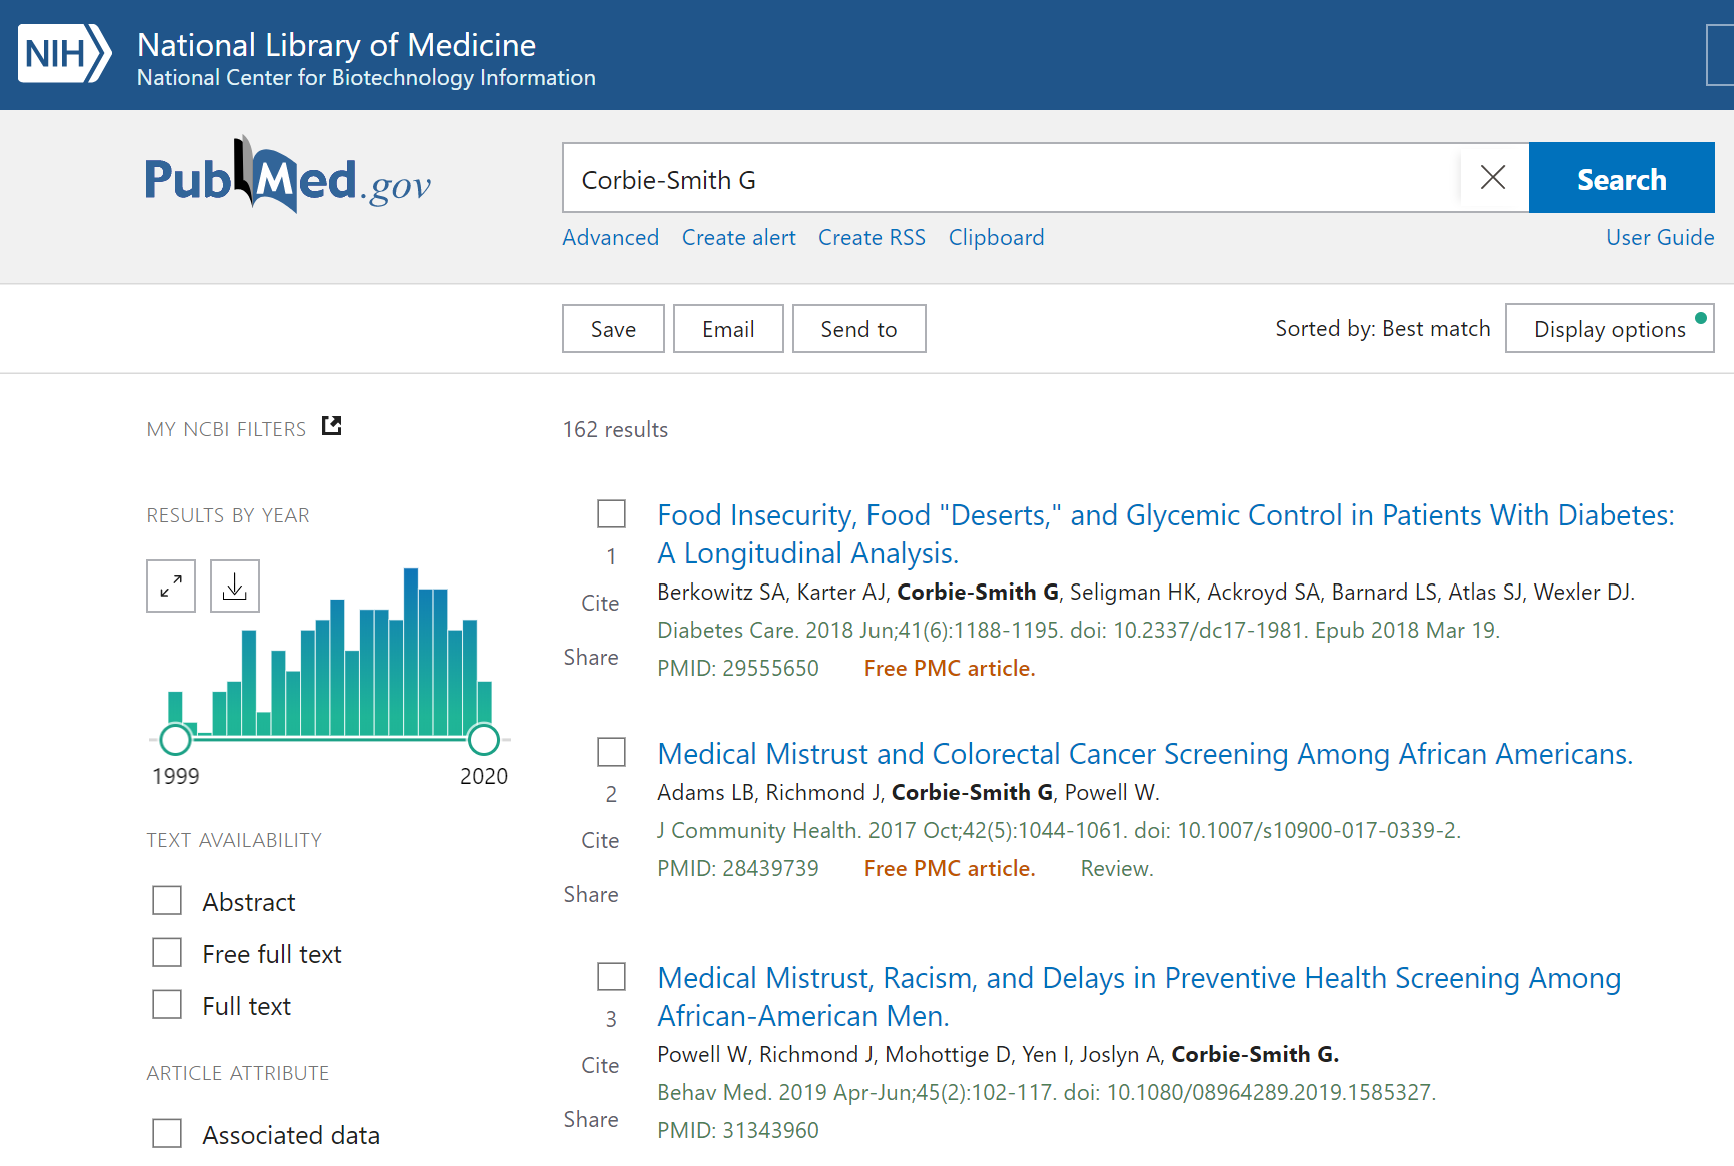 An author search for Corbie-Smith G in PubMed